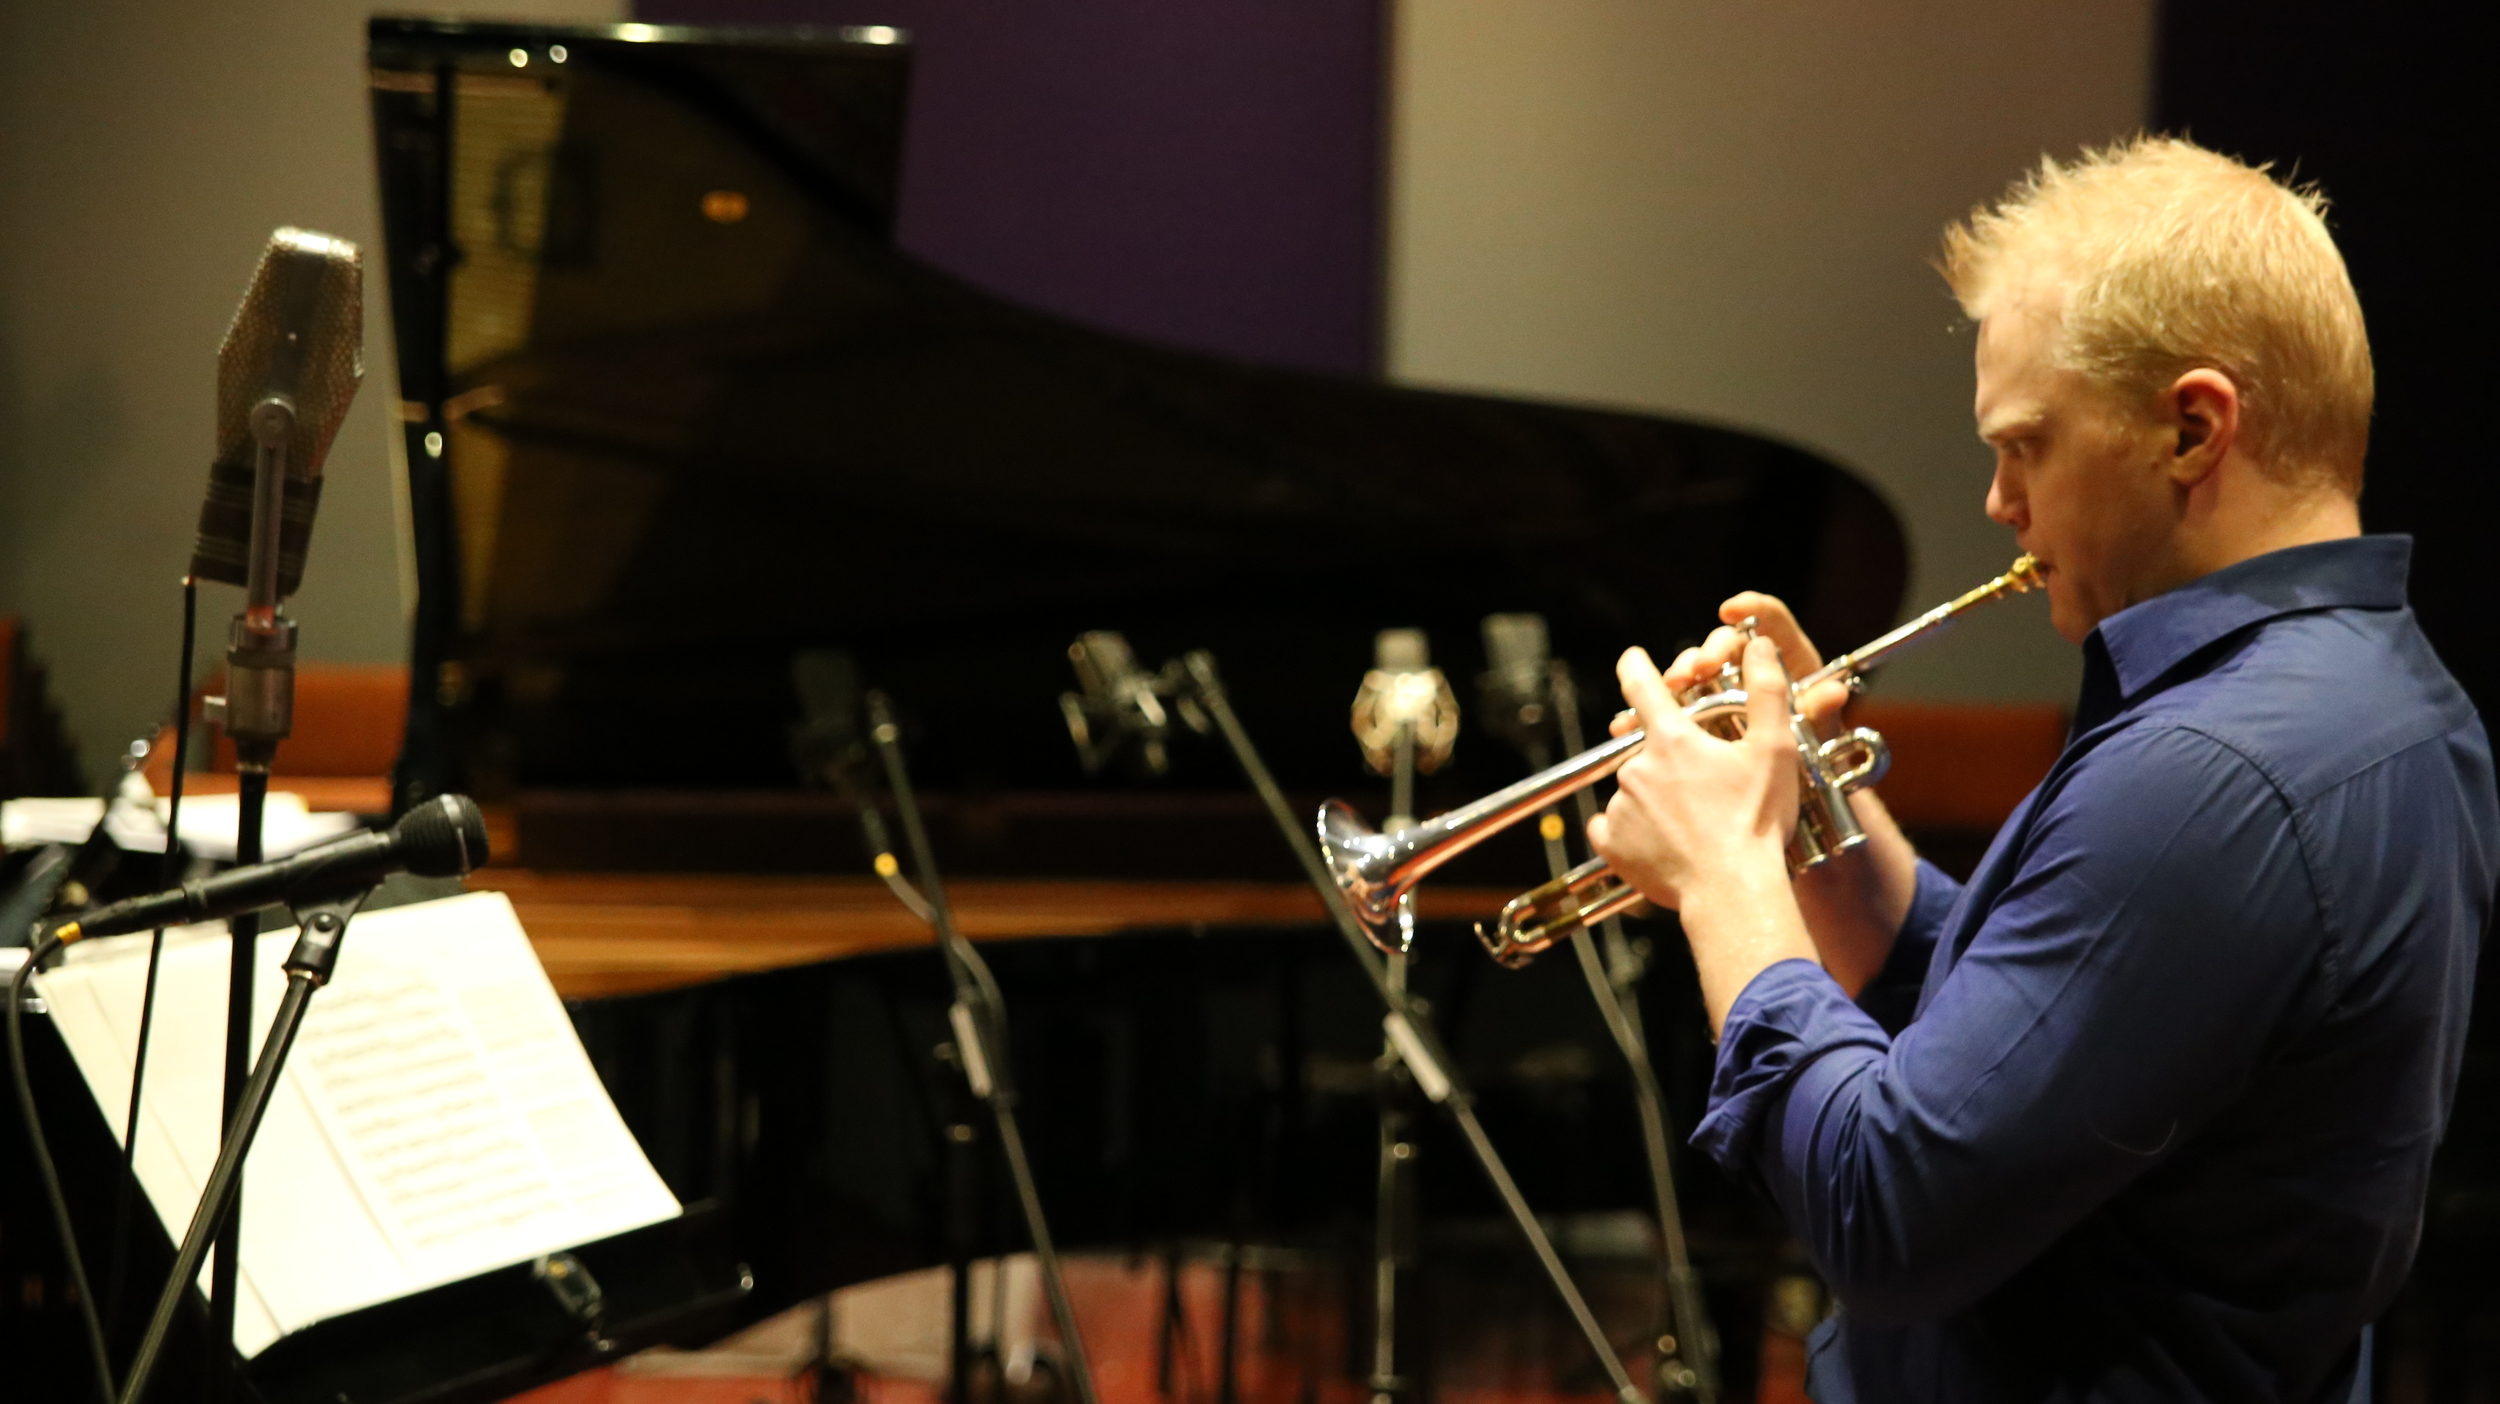 Trumpeter Phill O'Neill recording his first album The Operatic Trumpet